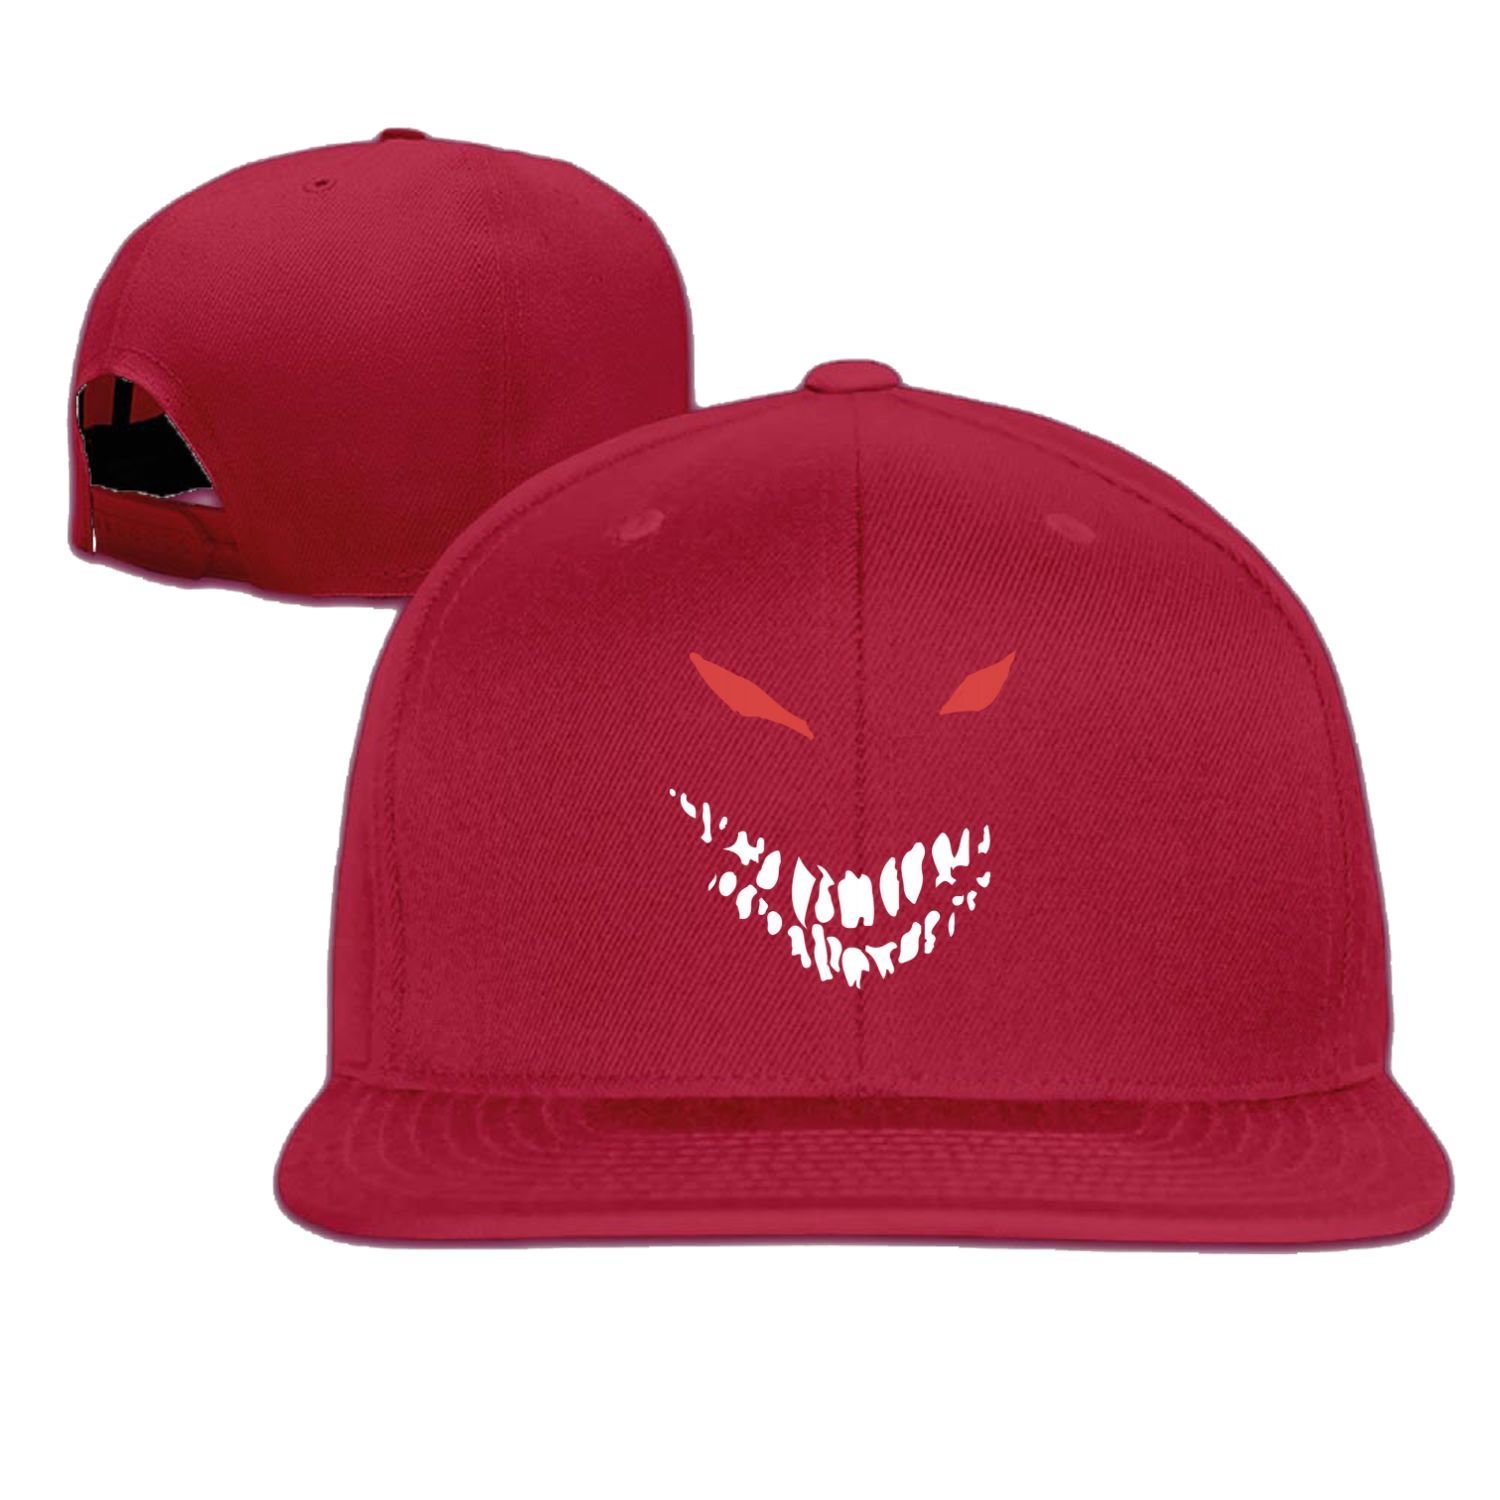 Cool unisex disturbed the guy face baseball cap red amazon ca clothing accessories